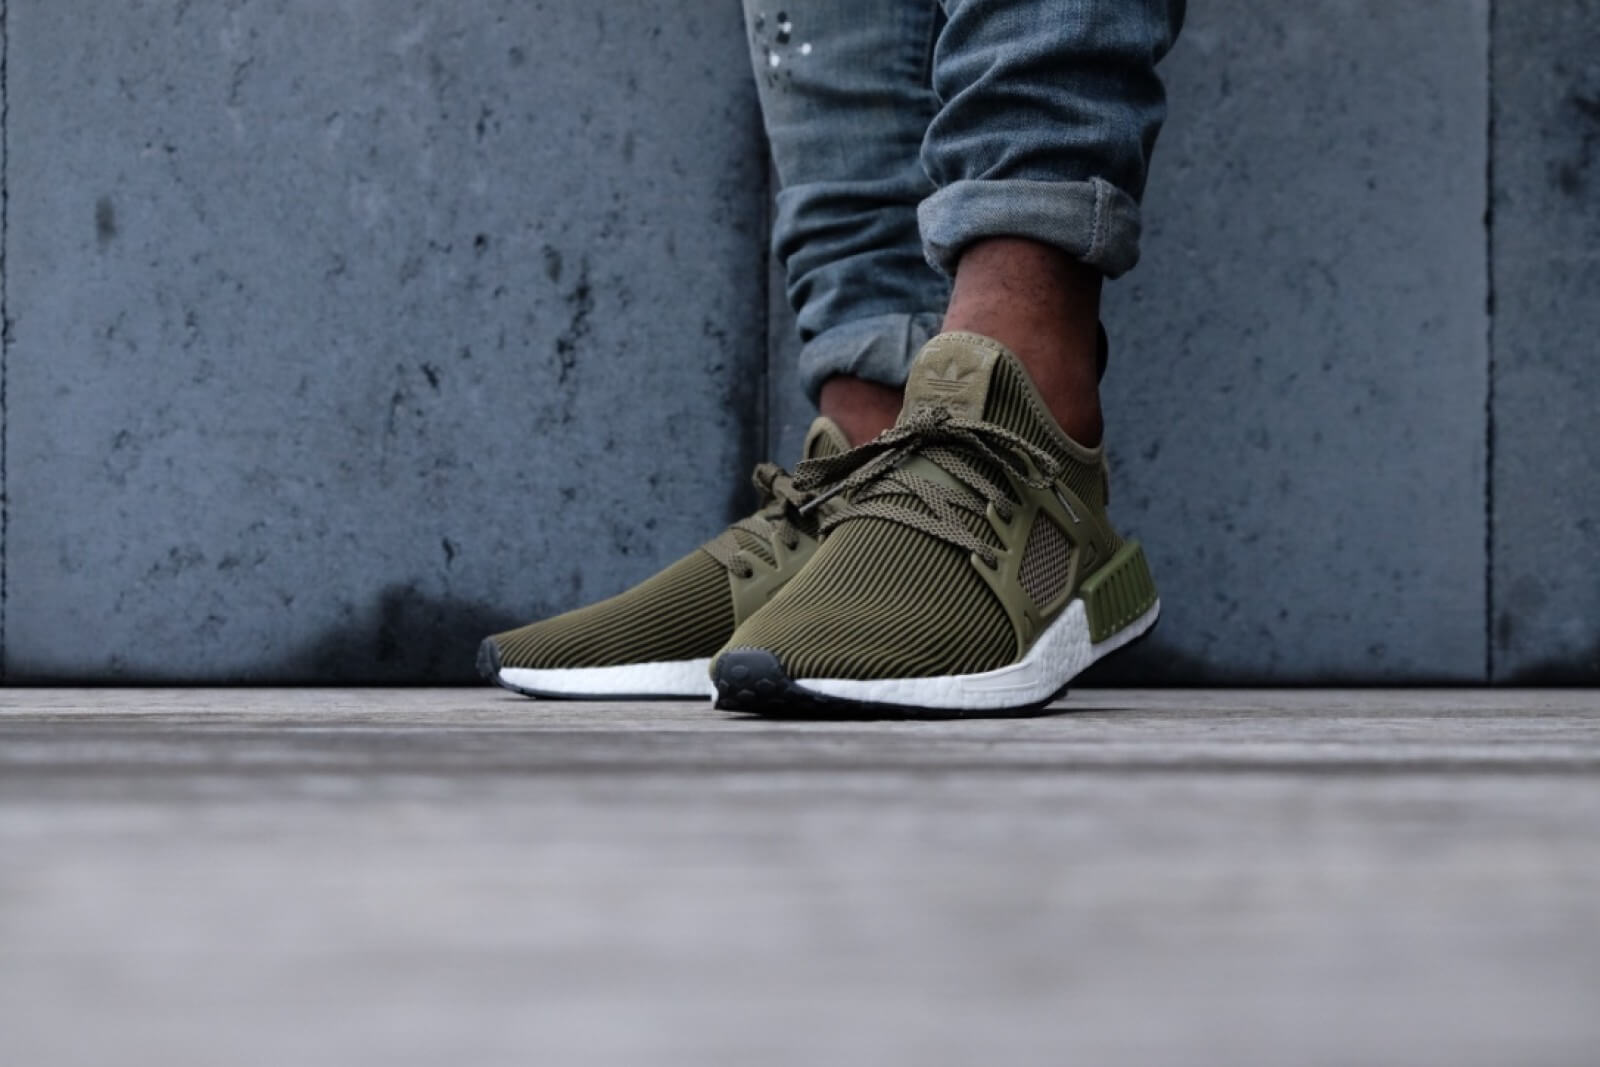 adidas Men's NMD XR1 Duck Camo Sneakers for $127 free shipping